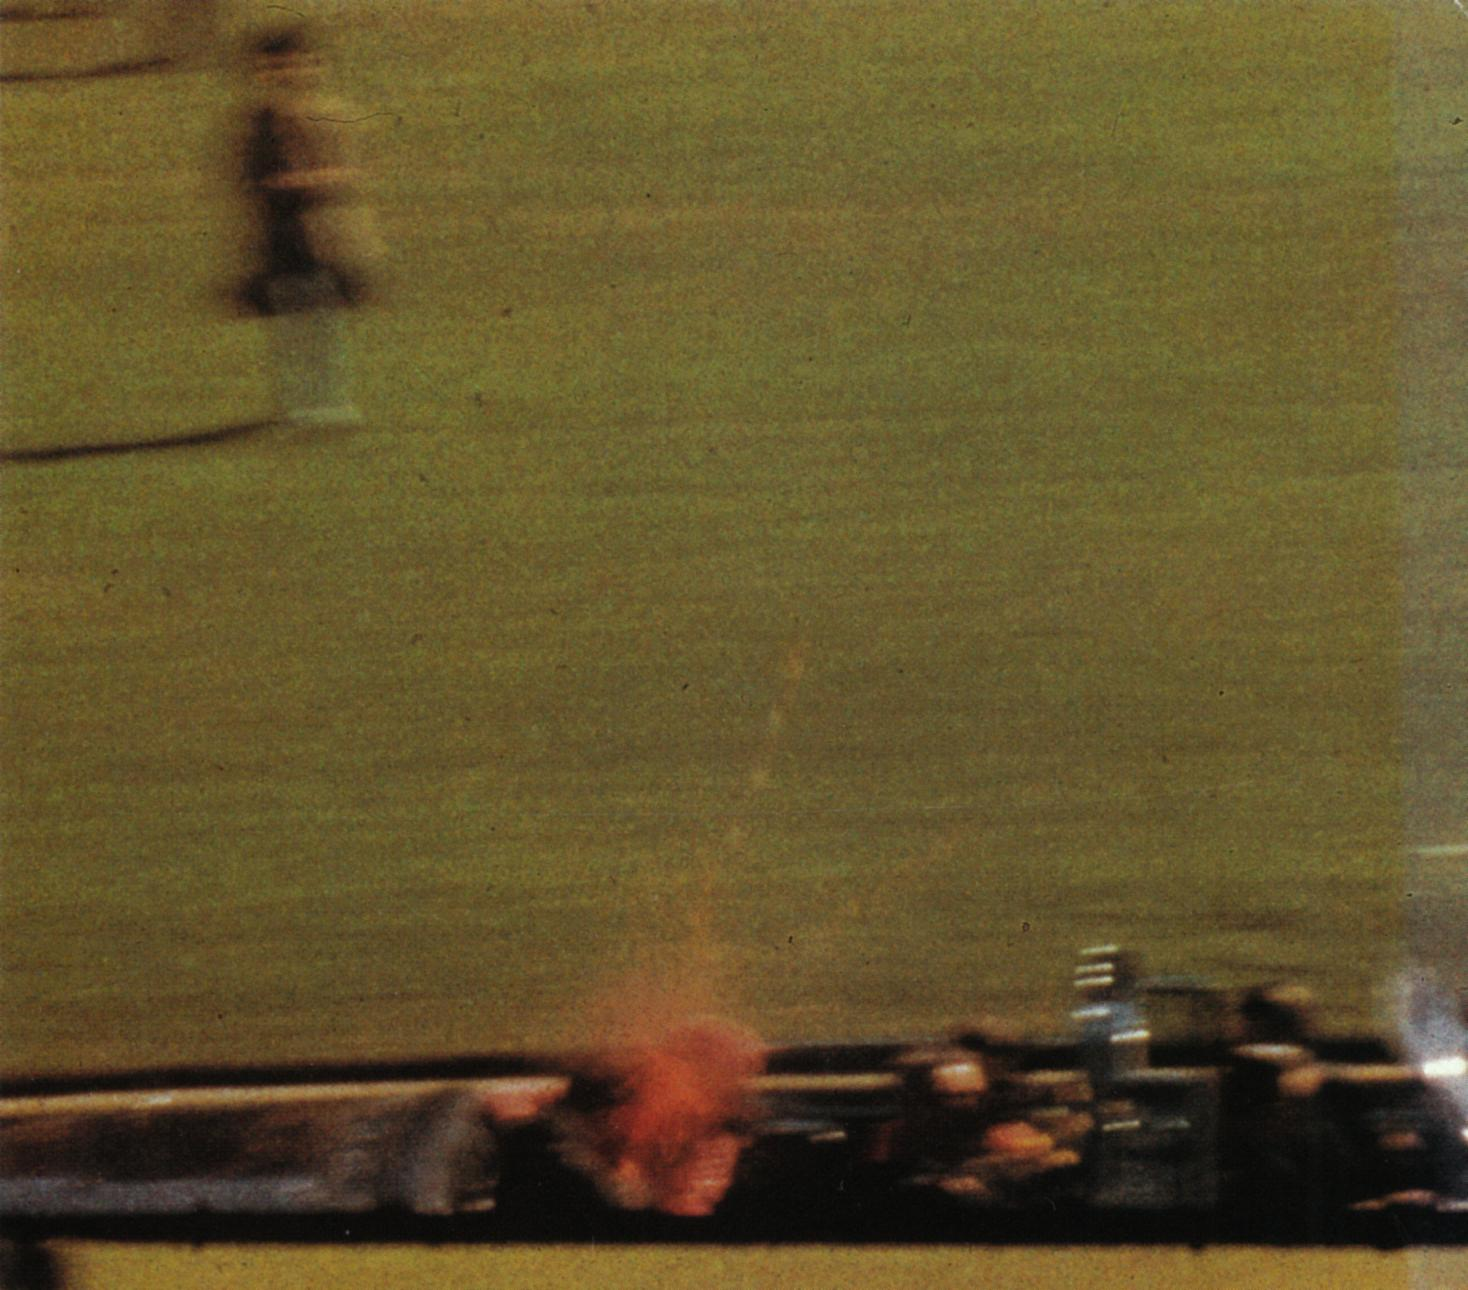 Photograph That Changed The World The Zapruder Film The Fedora Chronicles Rants